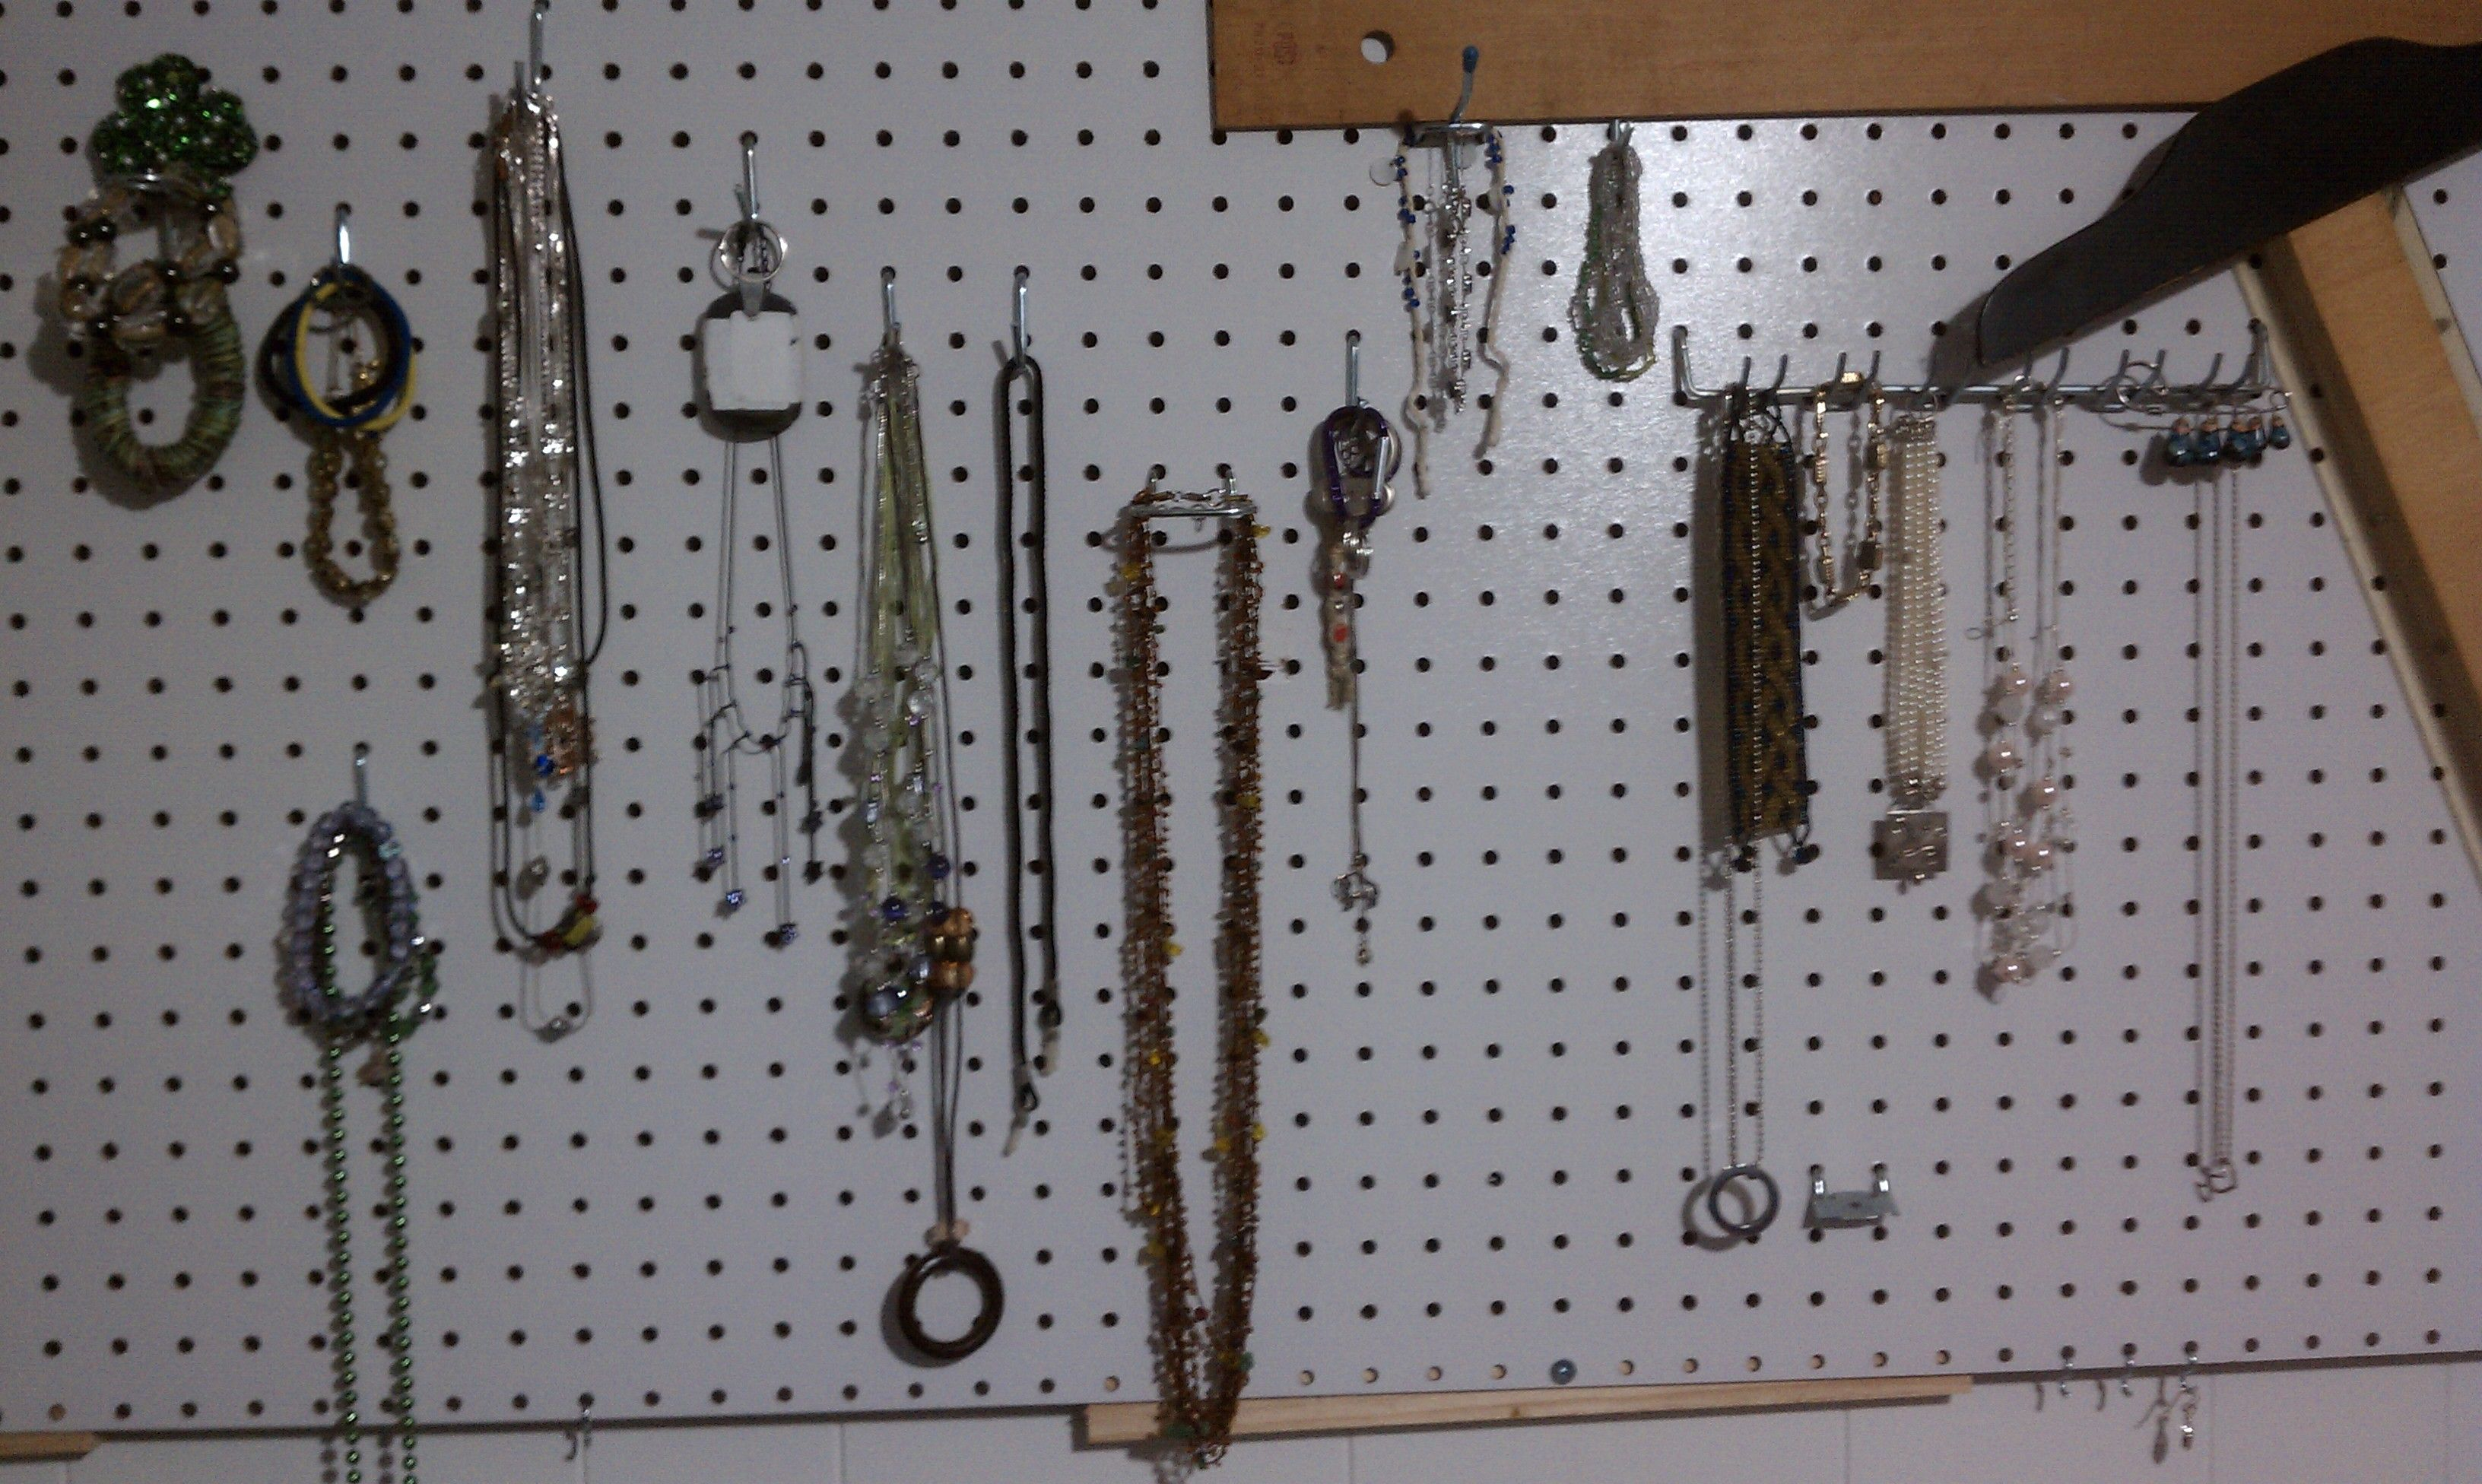 Peg Boards are not just for tools... bracelets and necklaces at a glance!